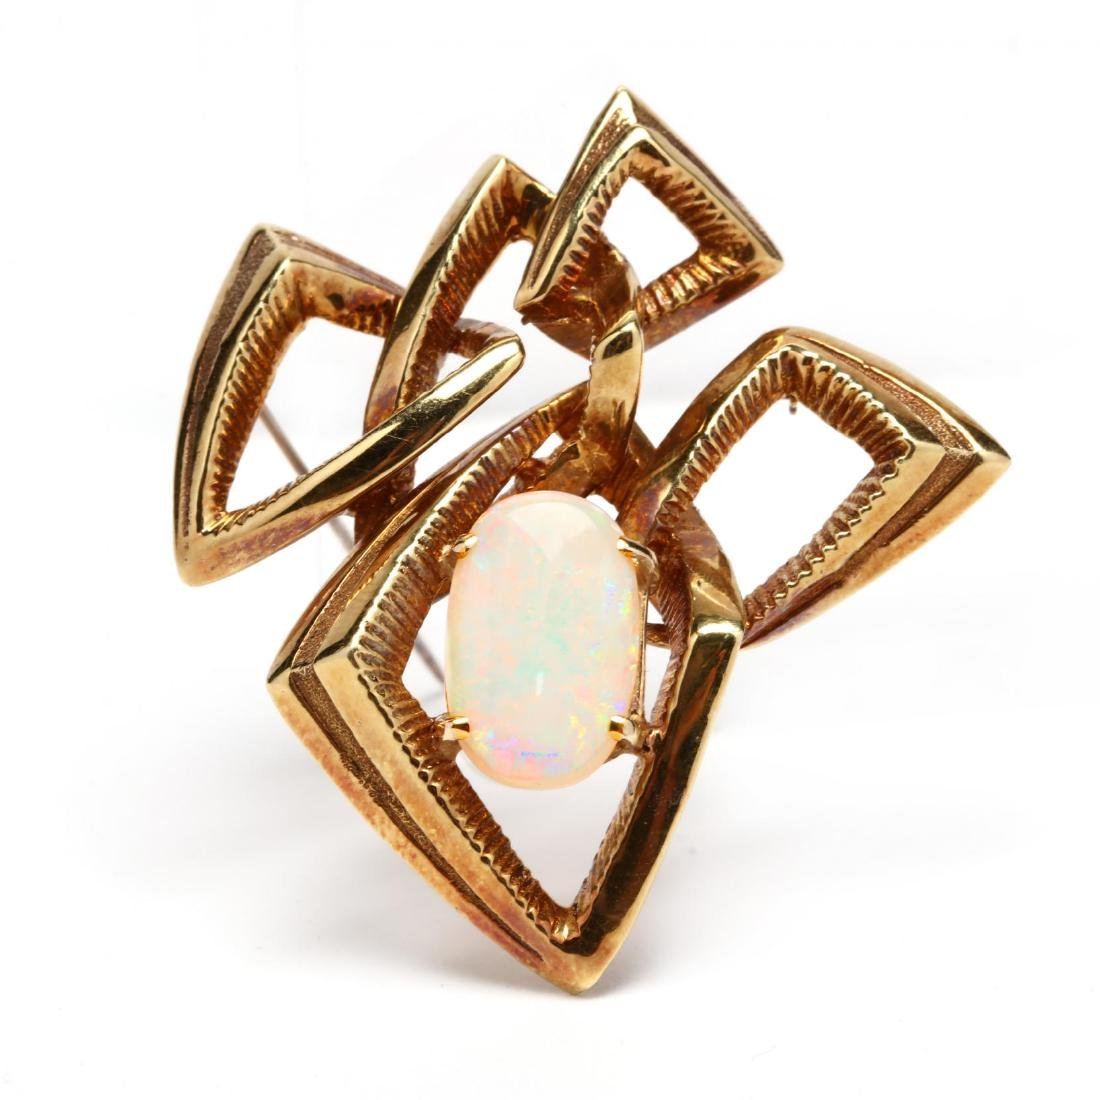 18KT Gold and Opal Brooch, signed